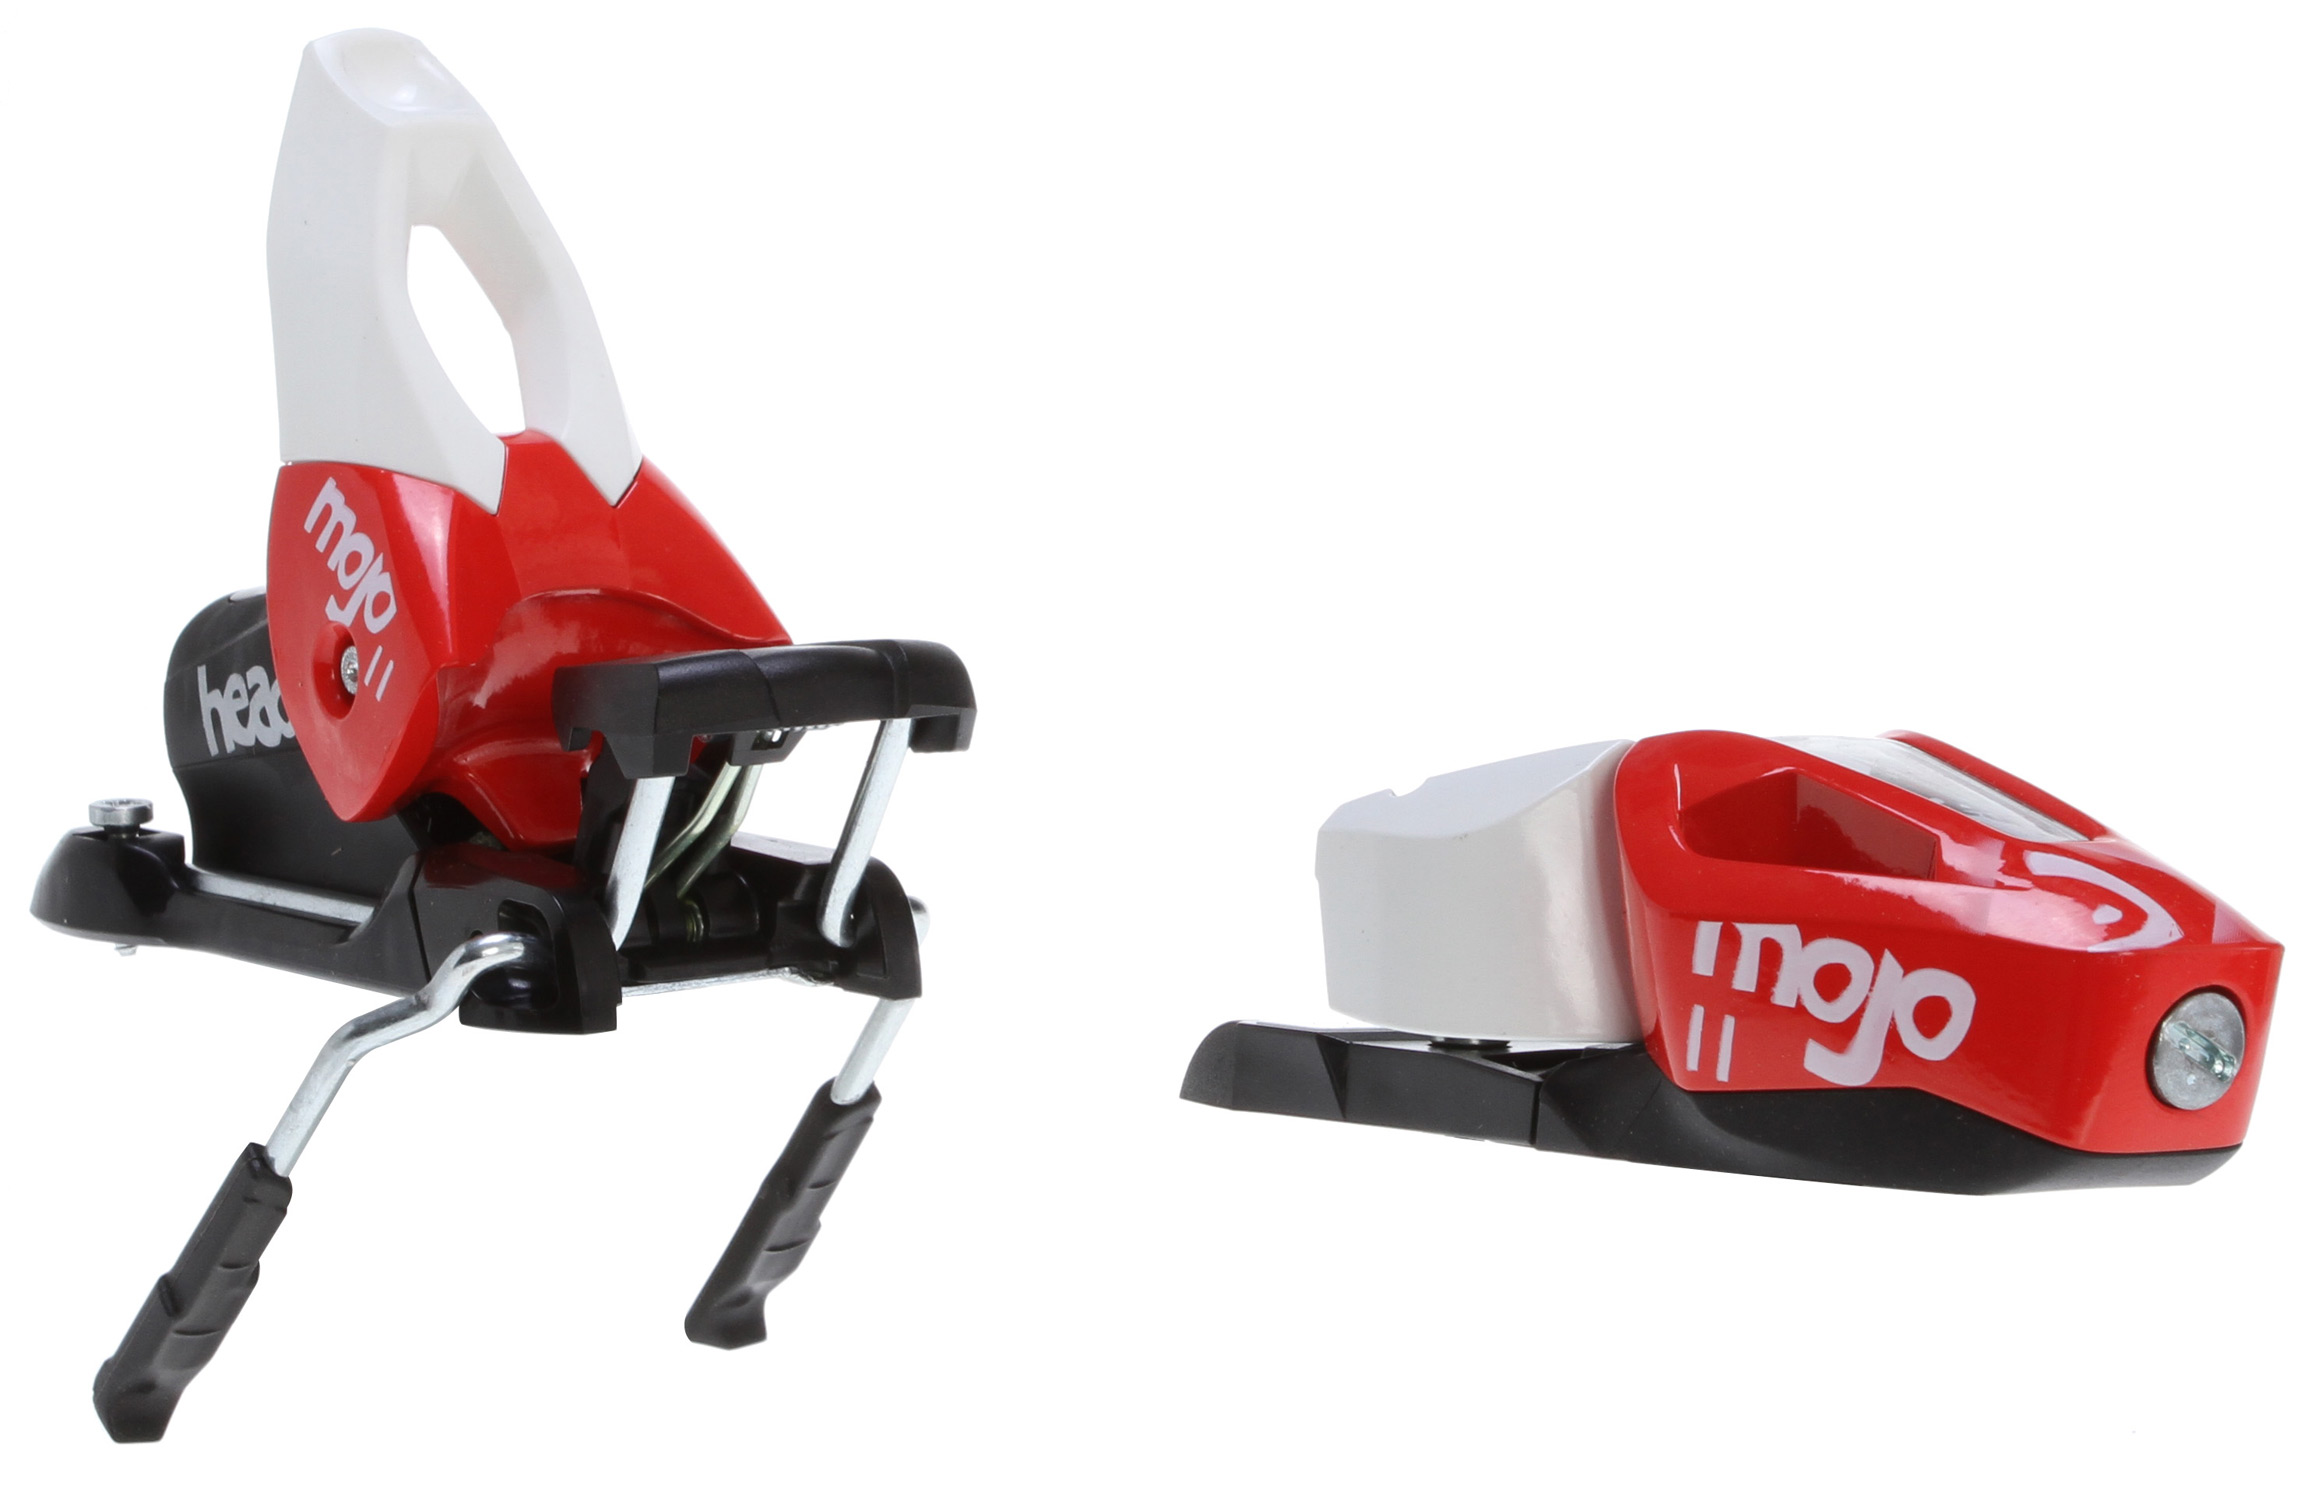 Ski Key Features of the Head Mojo 11 Wide FR Ski Bindings: SX Toe with TRP System Full Diagonal Teflon Wide SX Heel Dura-Coating Stand Height: 21.0mm Weight: 1670 g - $103.95